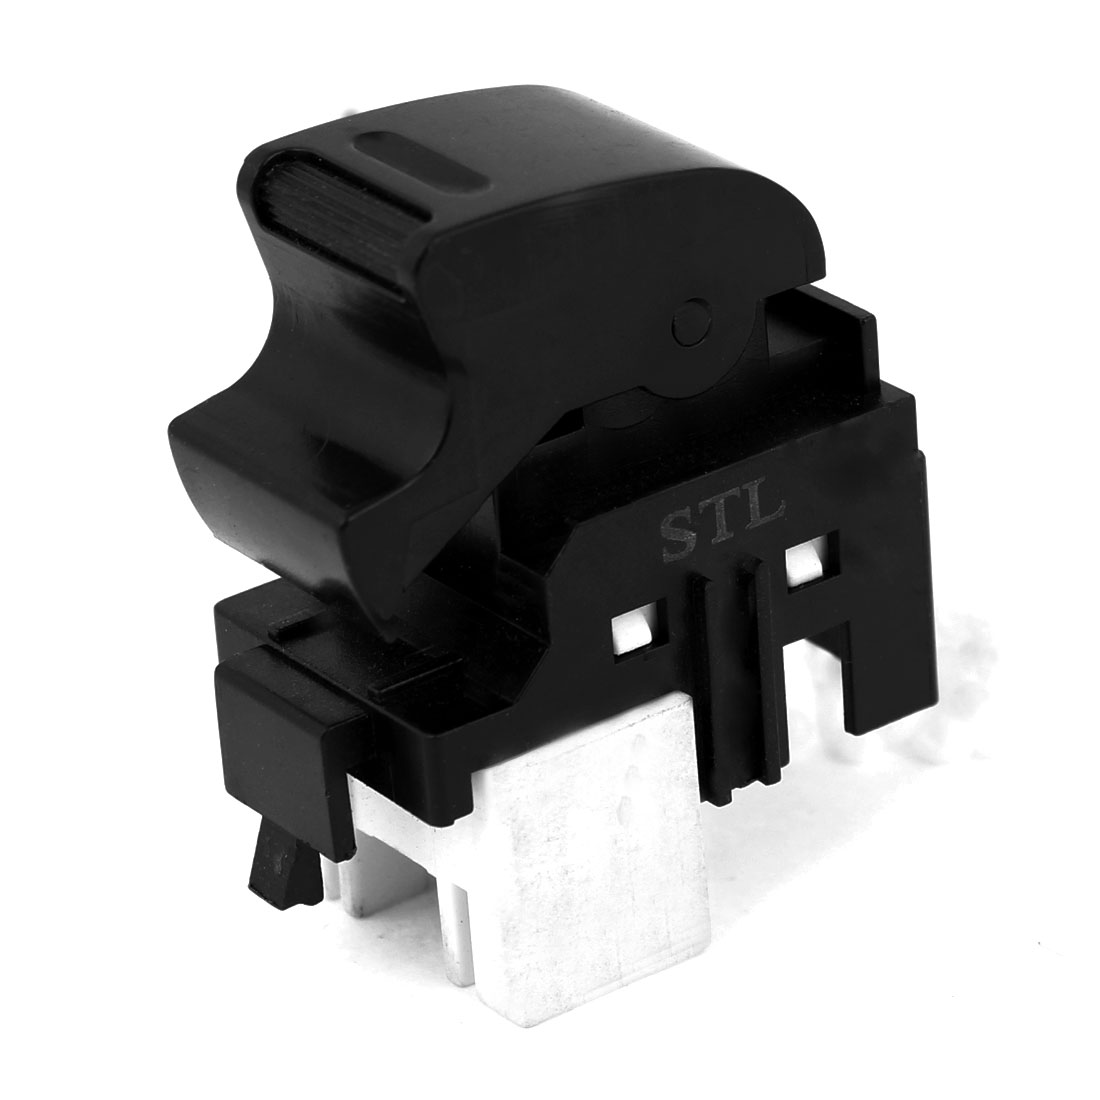 Passenger Power Window Switch 5 Pins Repair Accessory Size 47mm x 26m x 35mm (L*W*H)(China (Mainland))